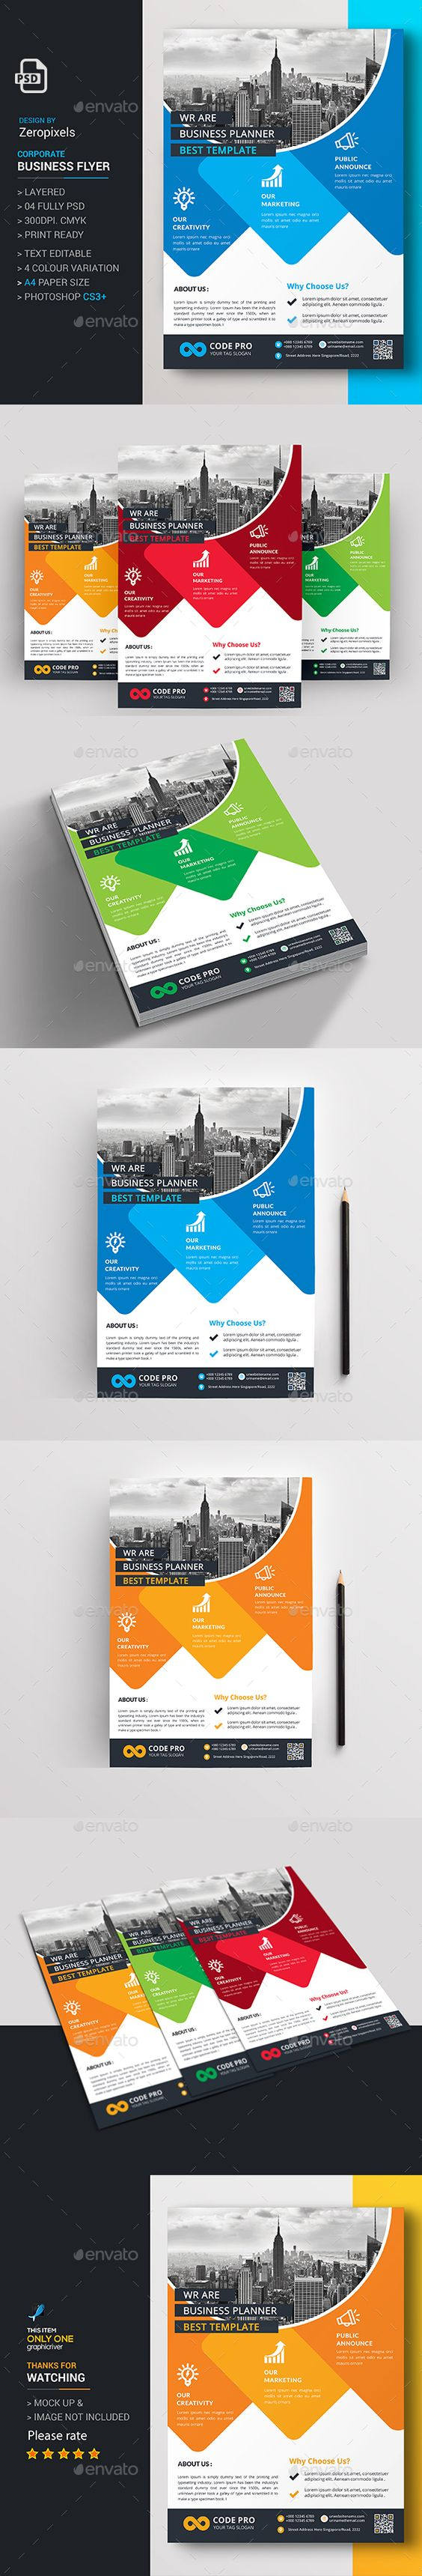 Corporate Business Flyer Template - Flyer Print Template PSD. Download here: http://graphicriver.net/item/corporate-business-flyer/16413343?s_rank=56&ref=yinkira